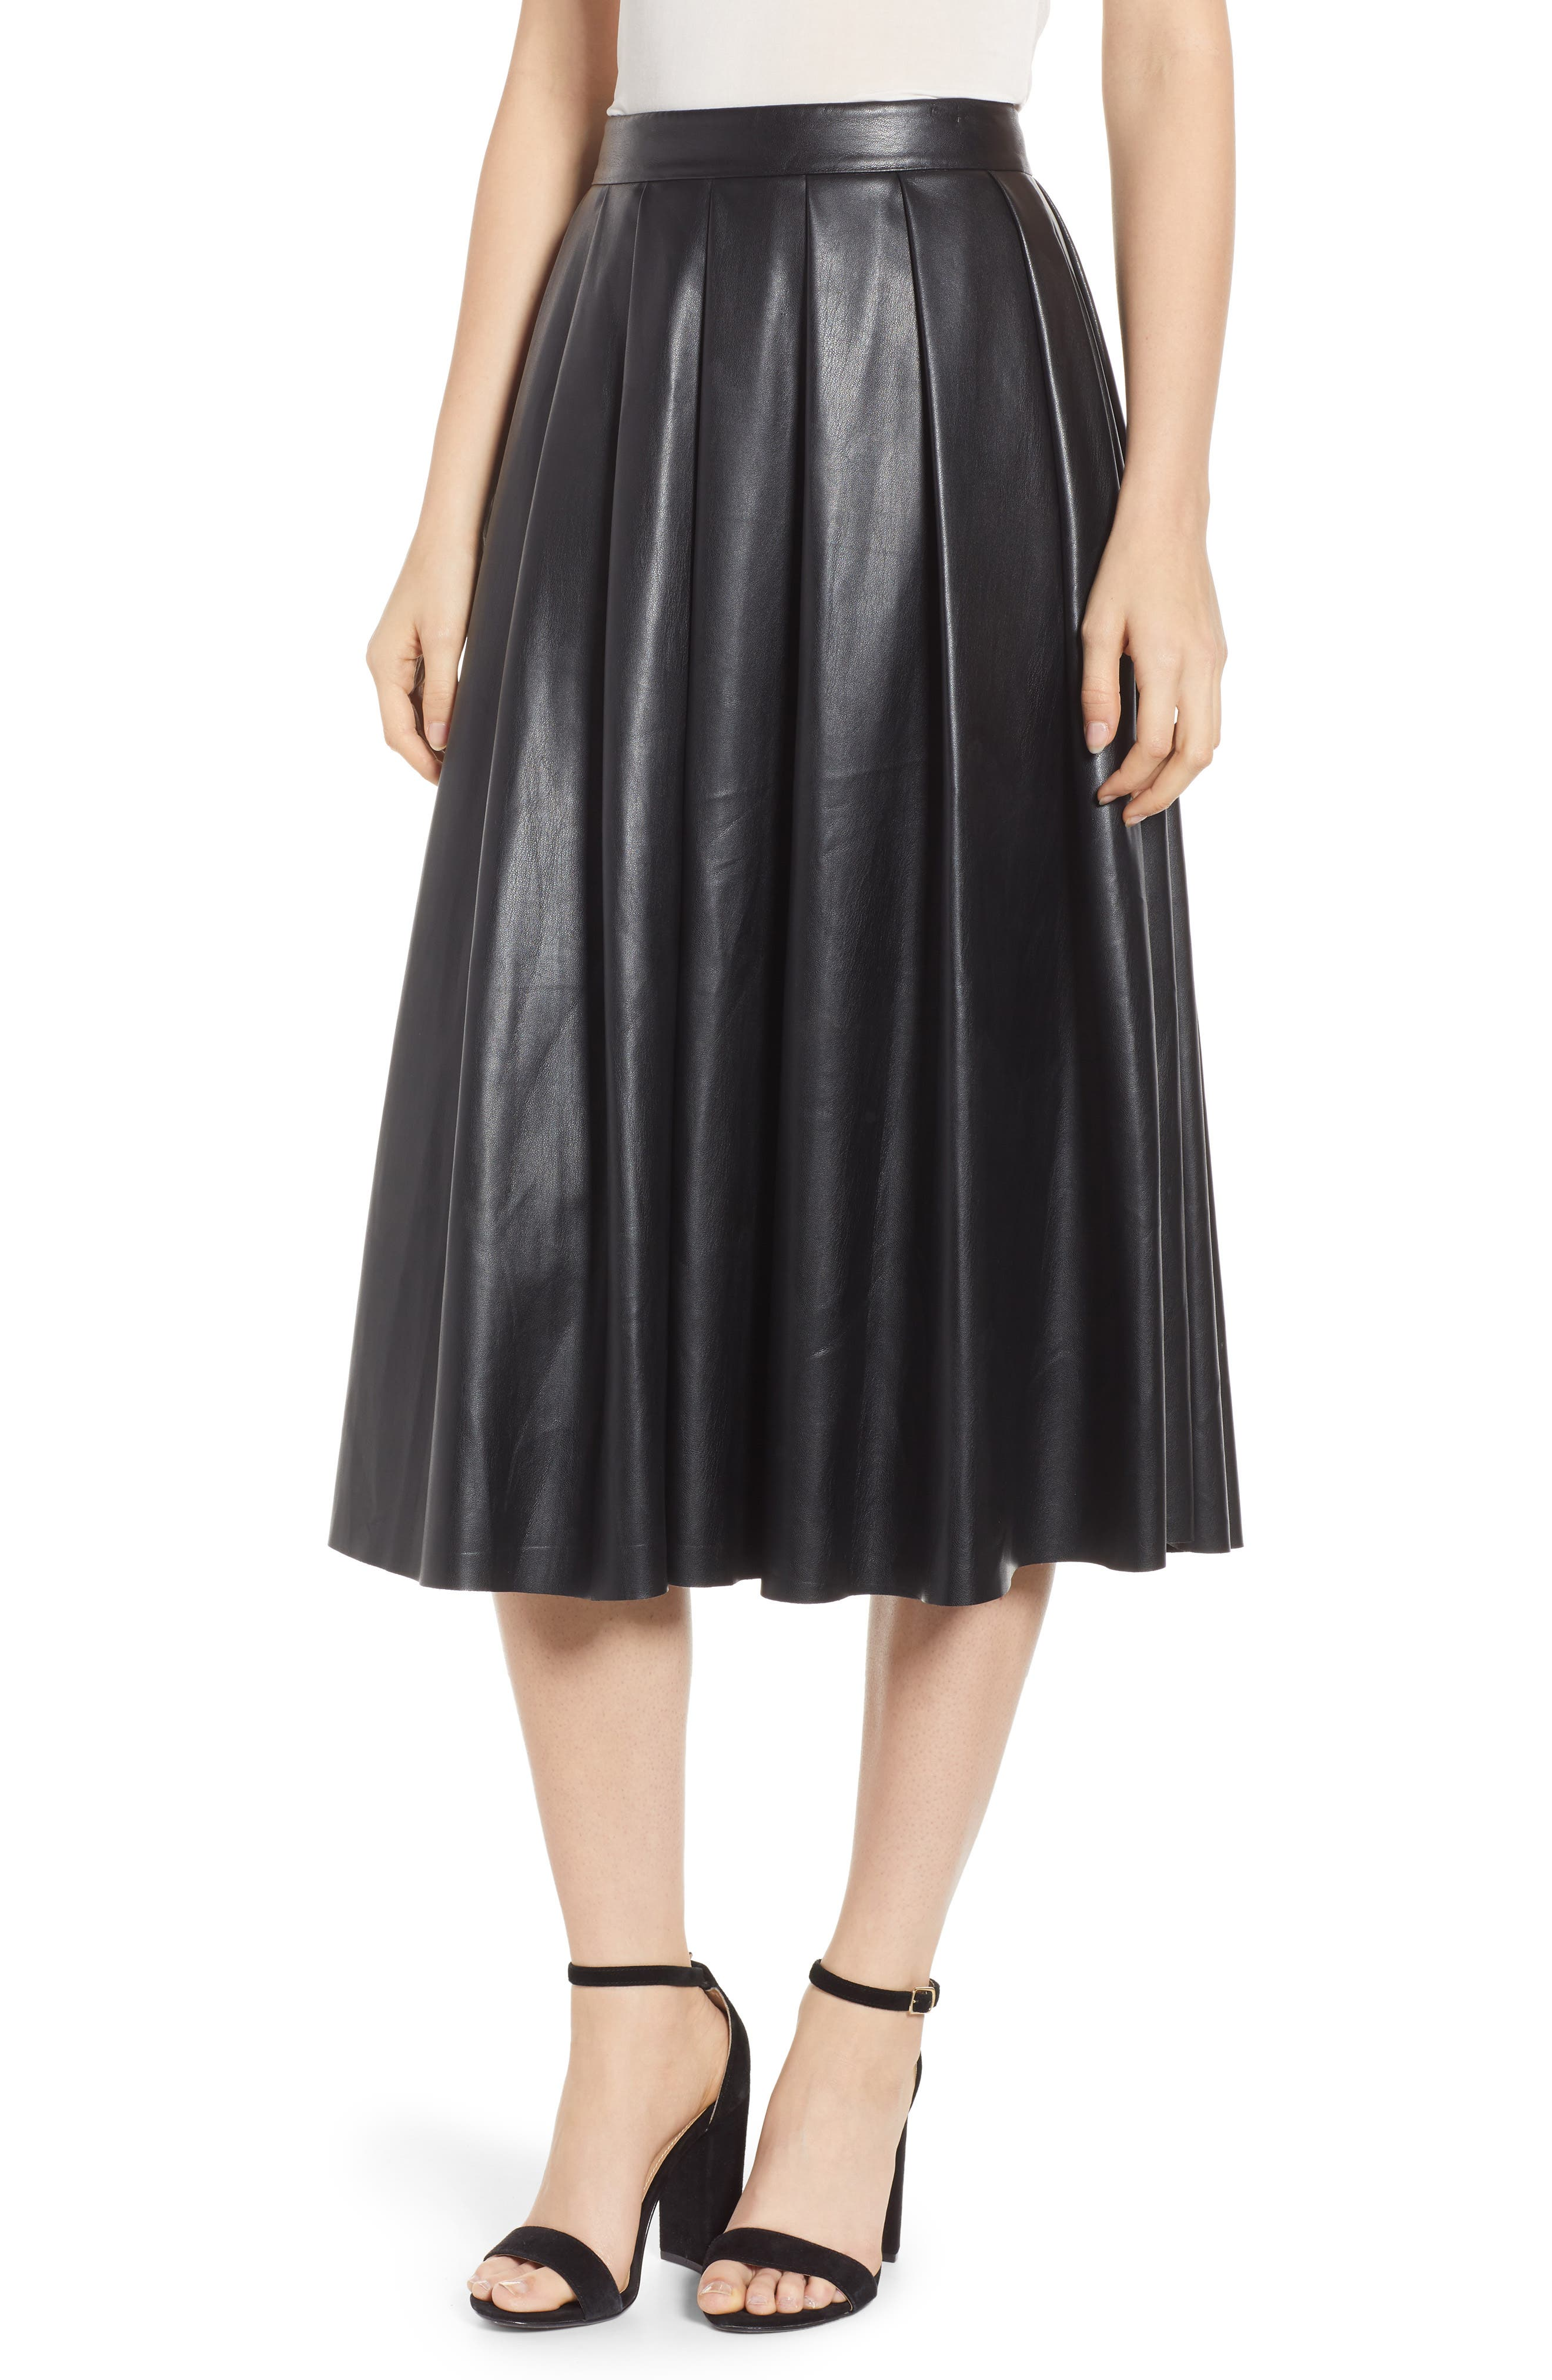 HUDSON Pleated Faux-Leather Midi Skirt in Black